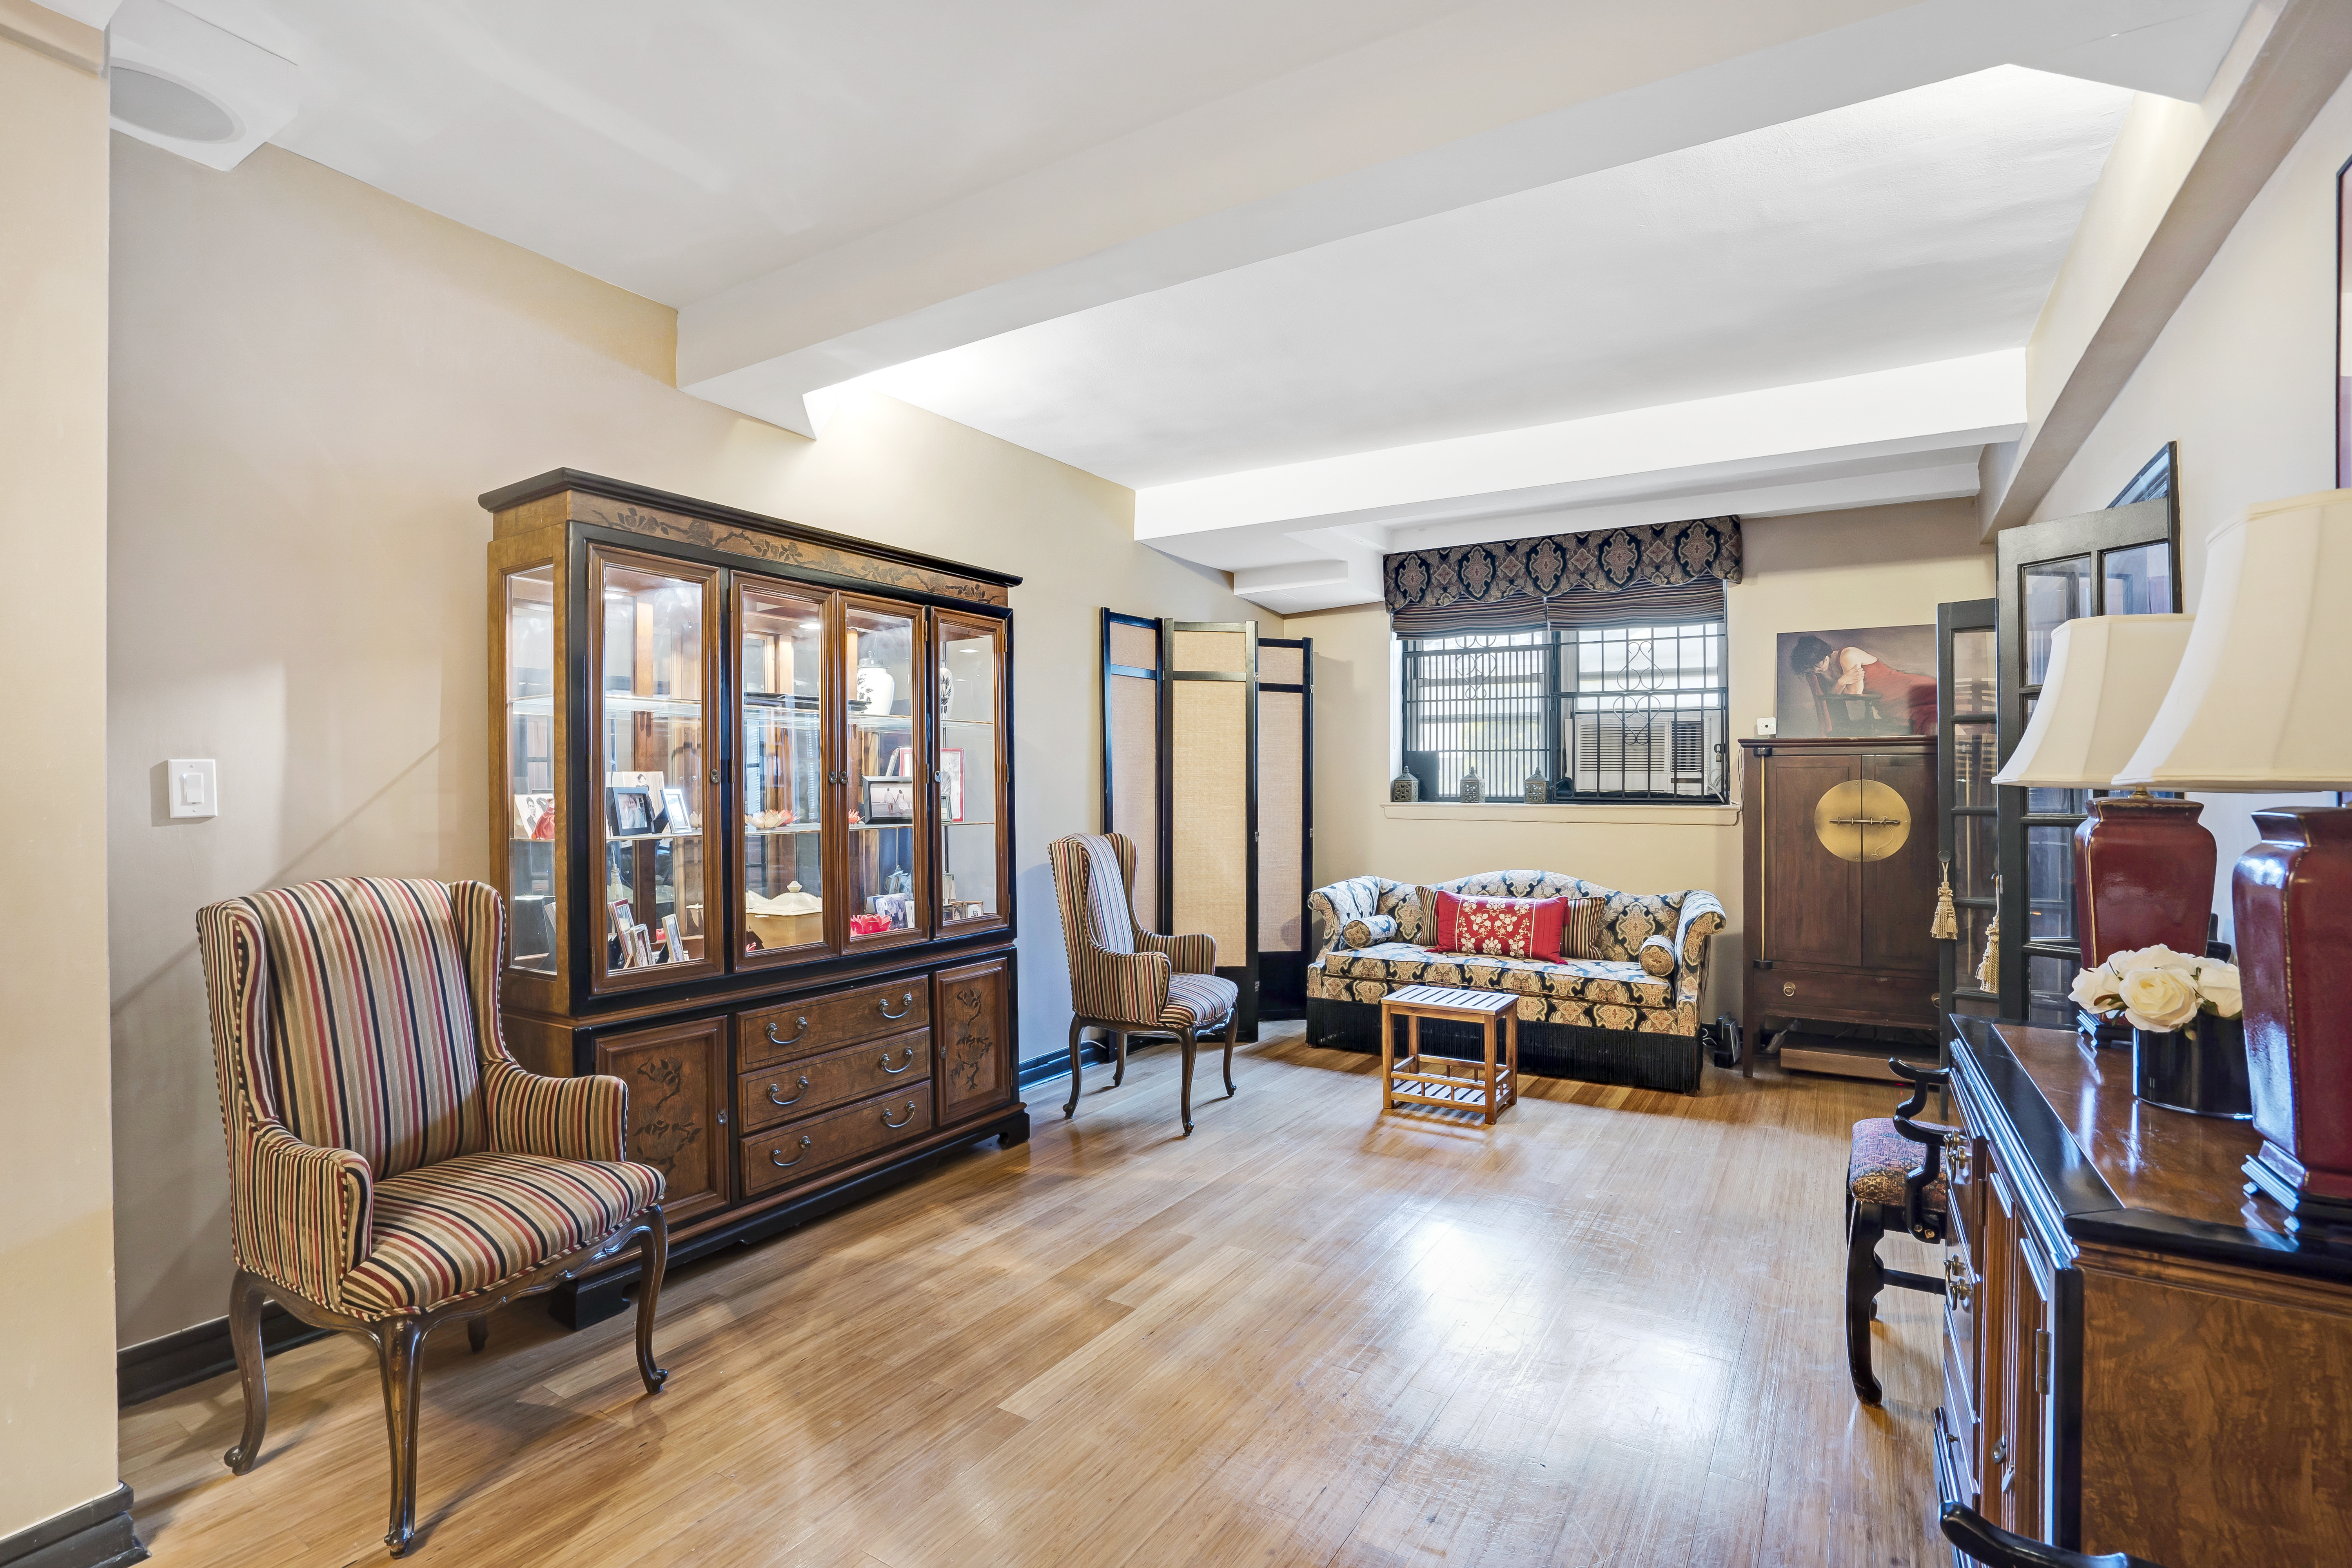 primary photo for 3512 Oxford Avenue L-1, Bronx, NY 10463, US